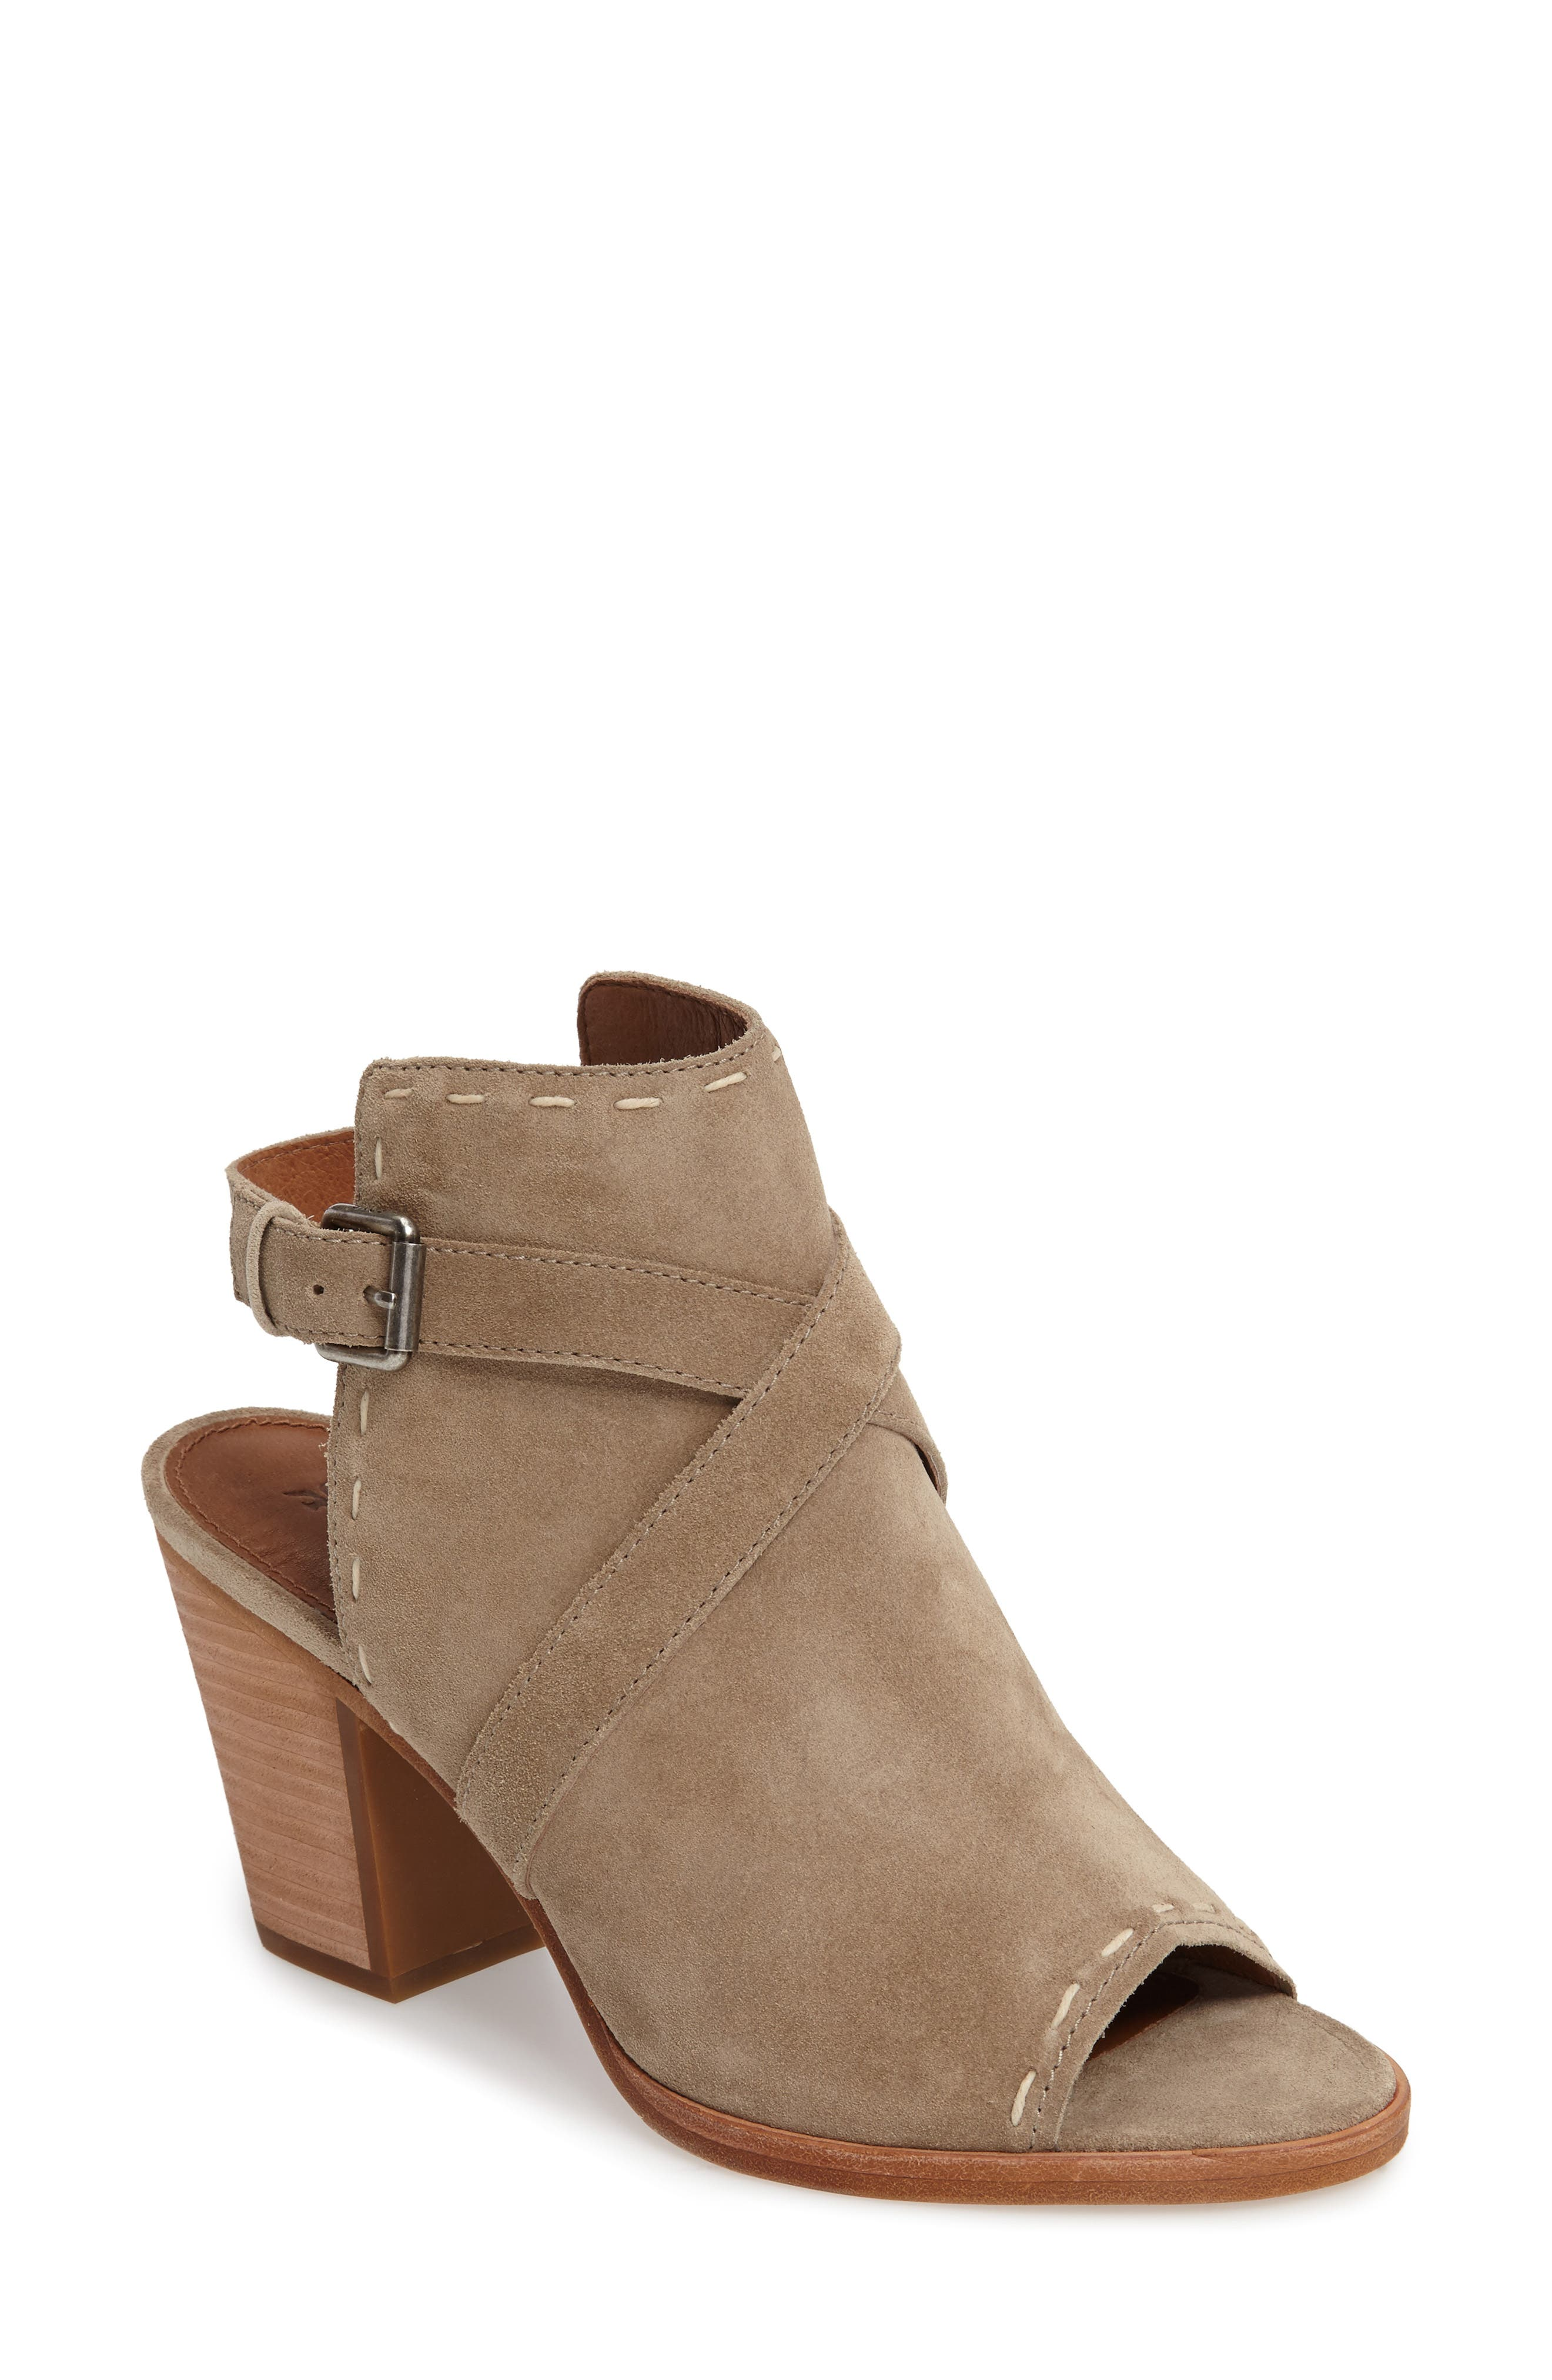 Alternate Image 1 Selected - Frye Dani Peep Toe Bootie (Women)